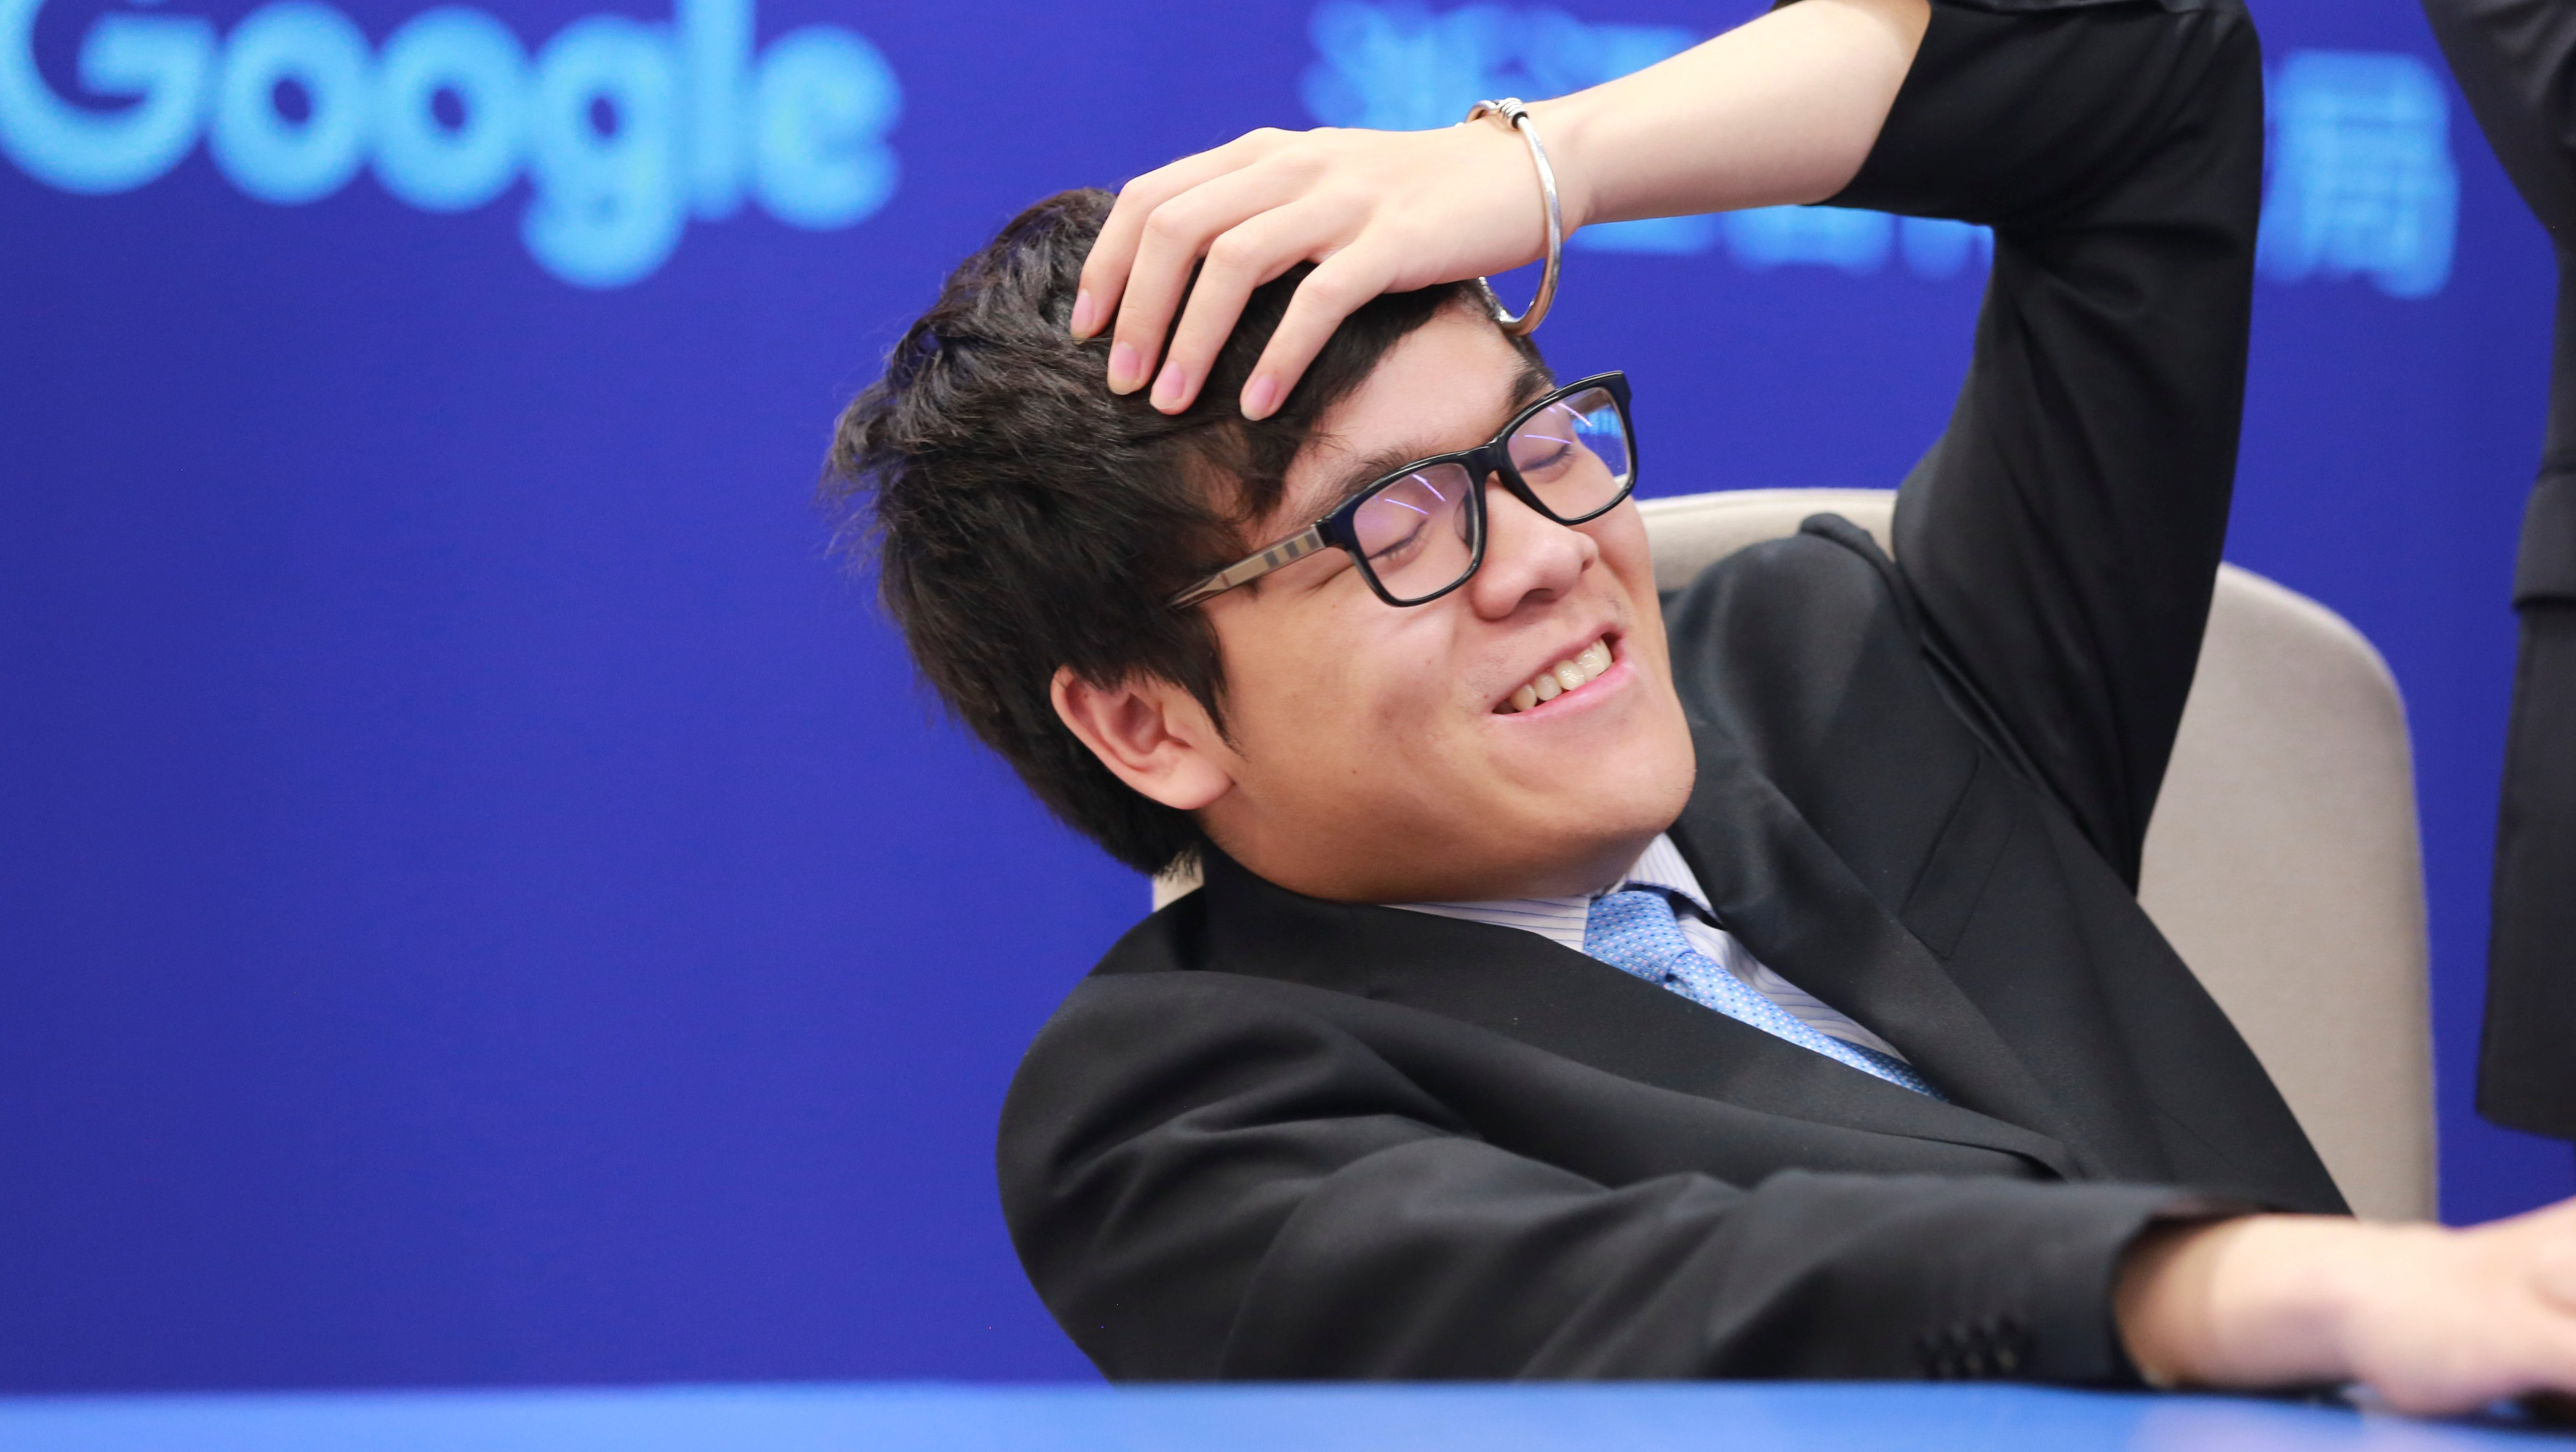 Chinese Go player Ke Jie reacts during his second match against Google's artificial intelligence program AlphaGo at the Future of Go Summit in Wuzhen, Zhejiang province, China May 25, 2017.